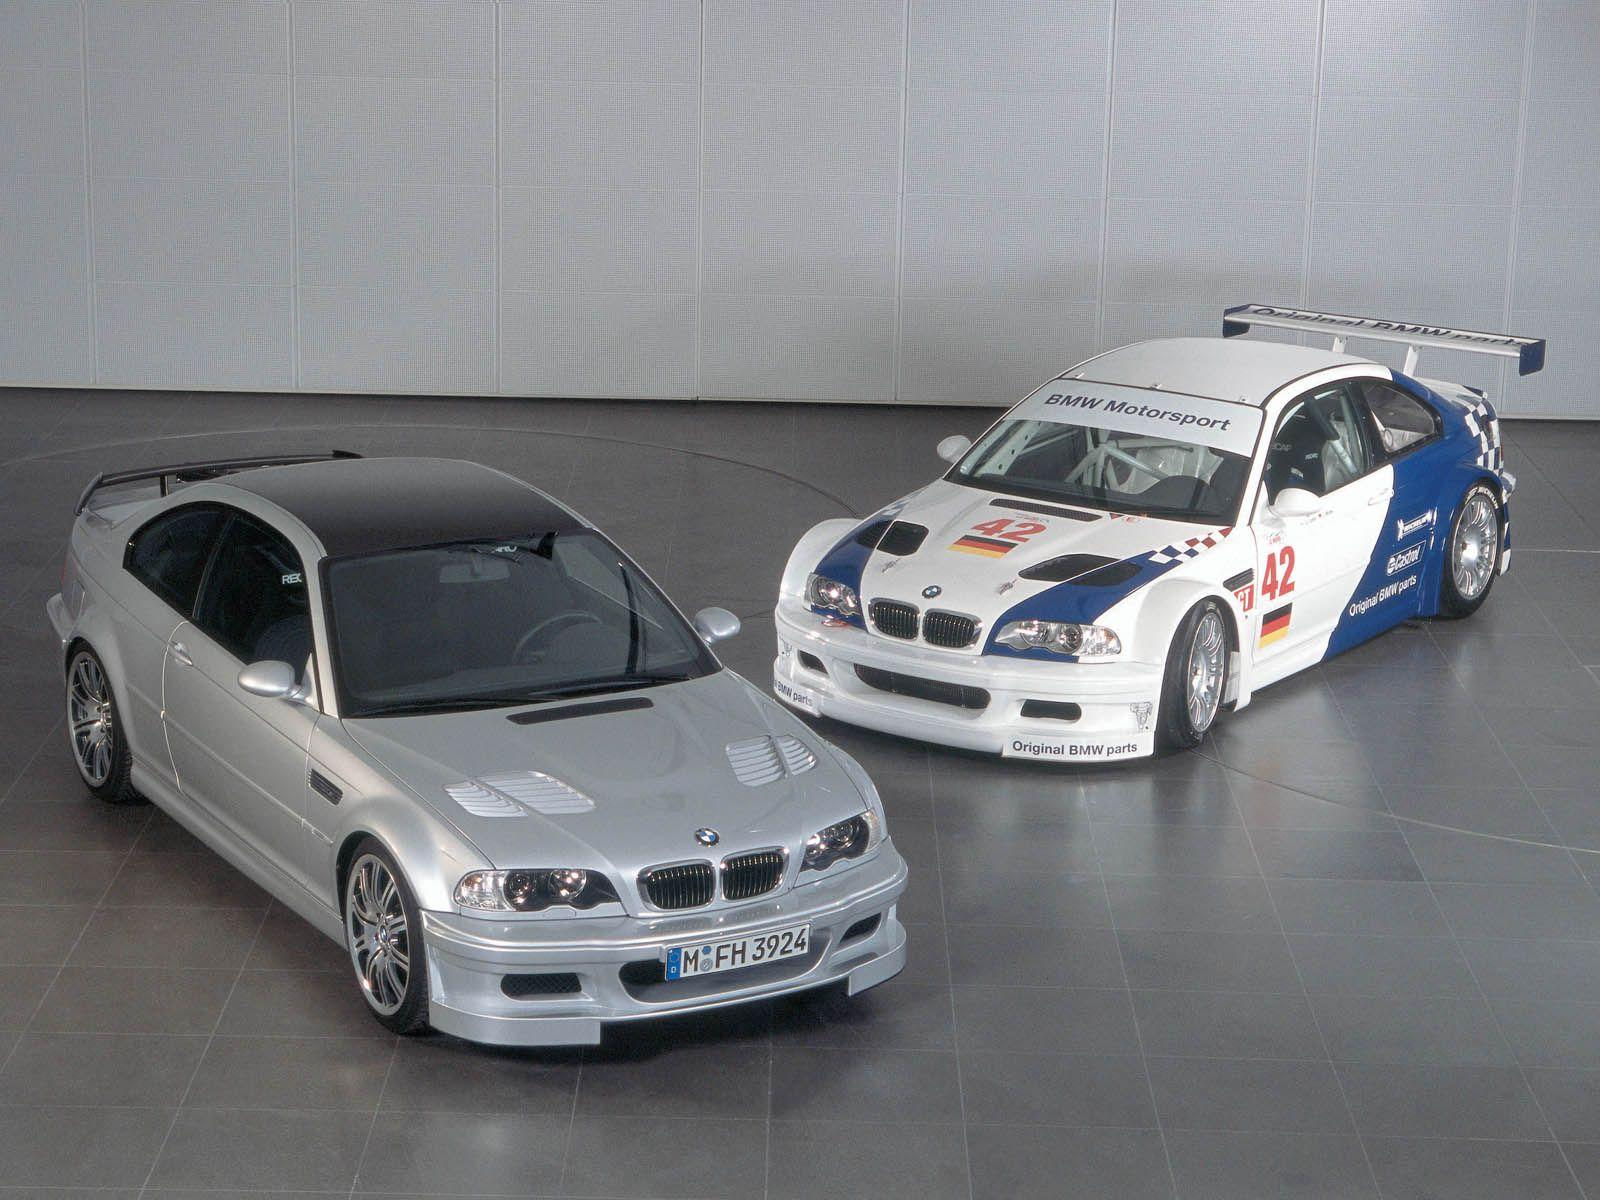 BMW Super Bild Of The Day: E46 M3 GTR